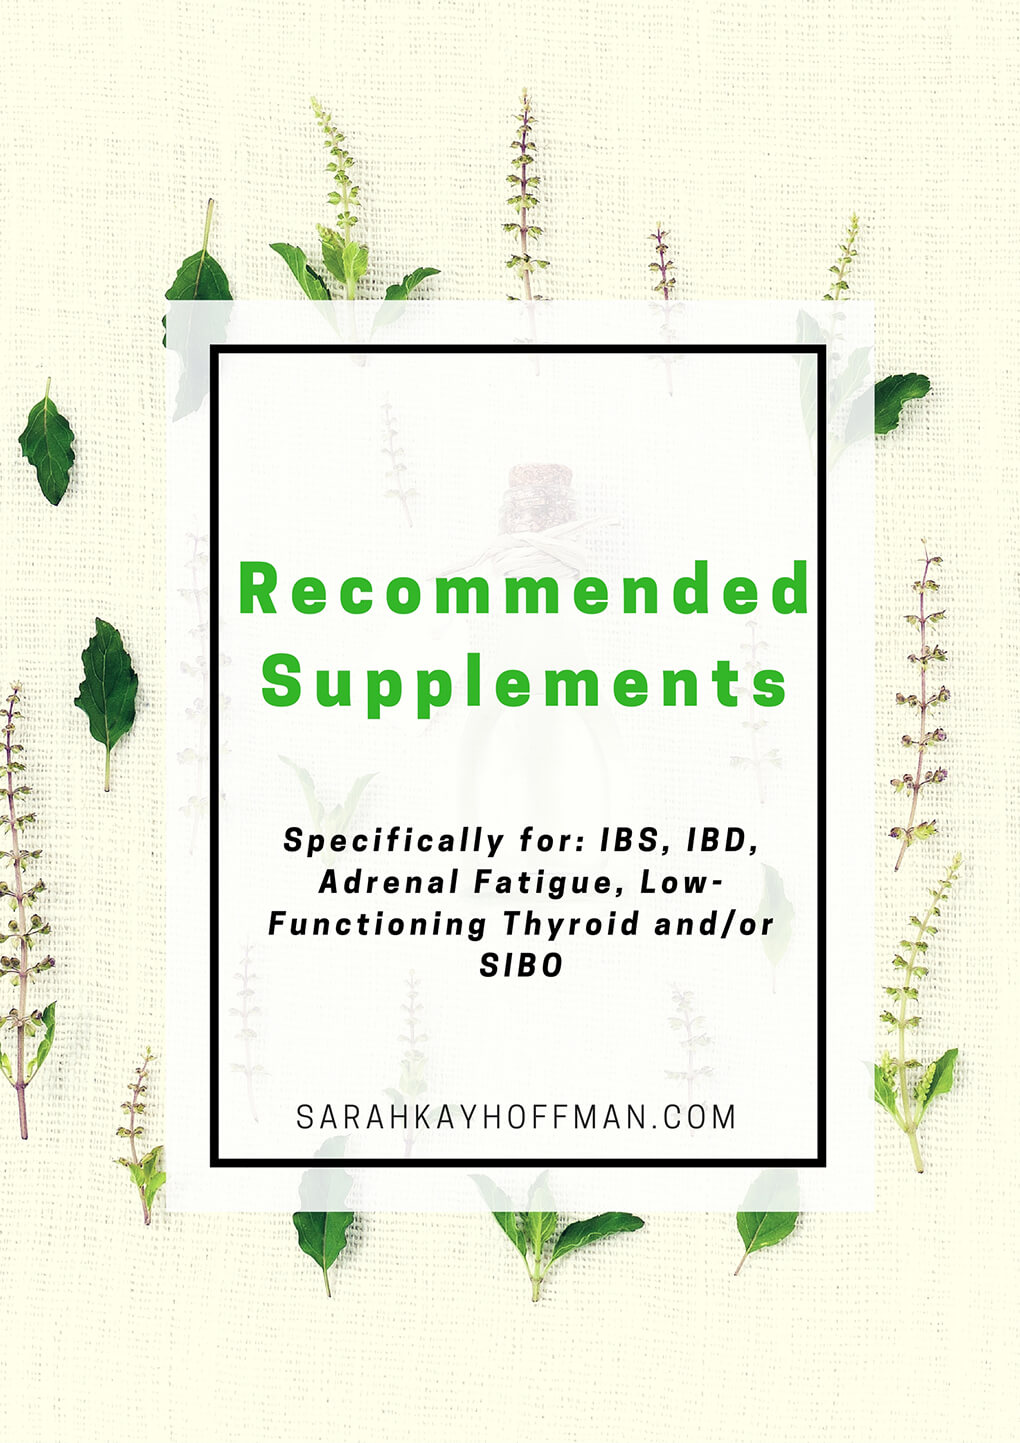 Recommended Supplements sarahkayhoffman.com IBD IBS SIBO Adrenal Fatigue